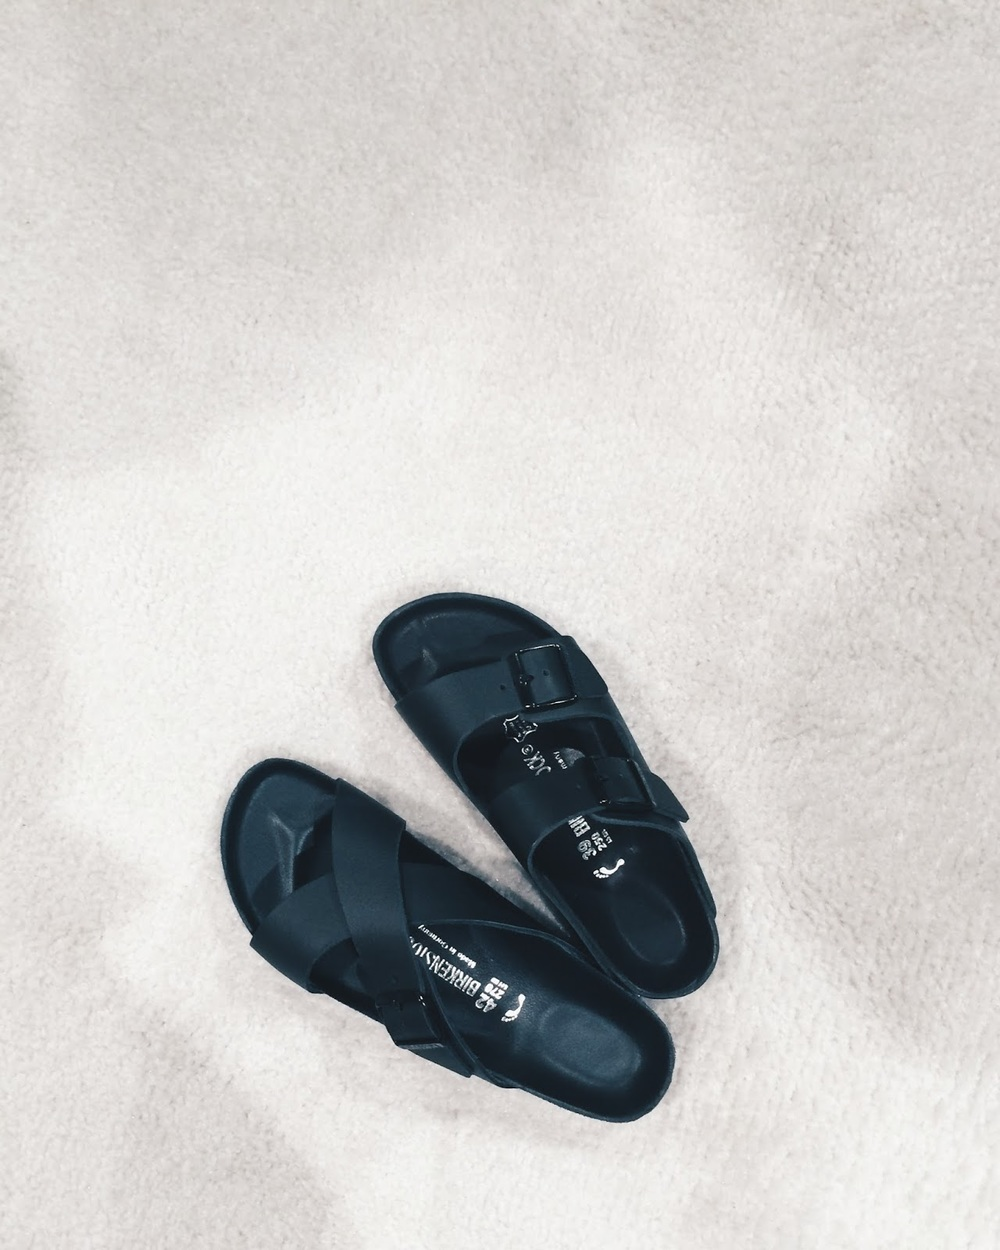 leather-birkenstocks-ss15-mens-sandals.jpg